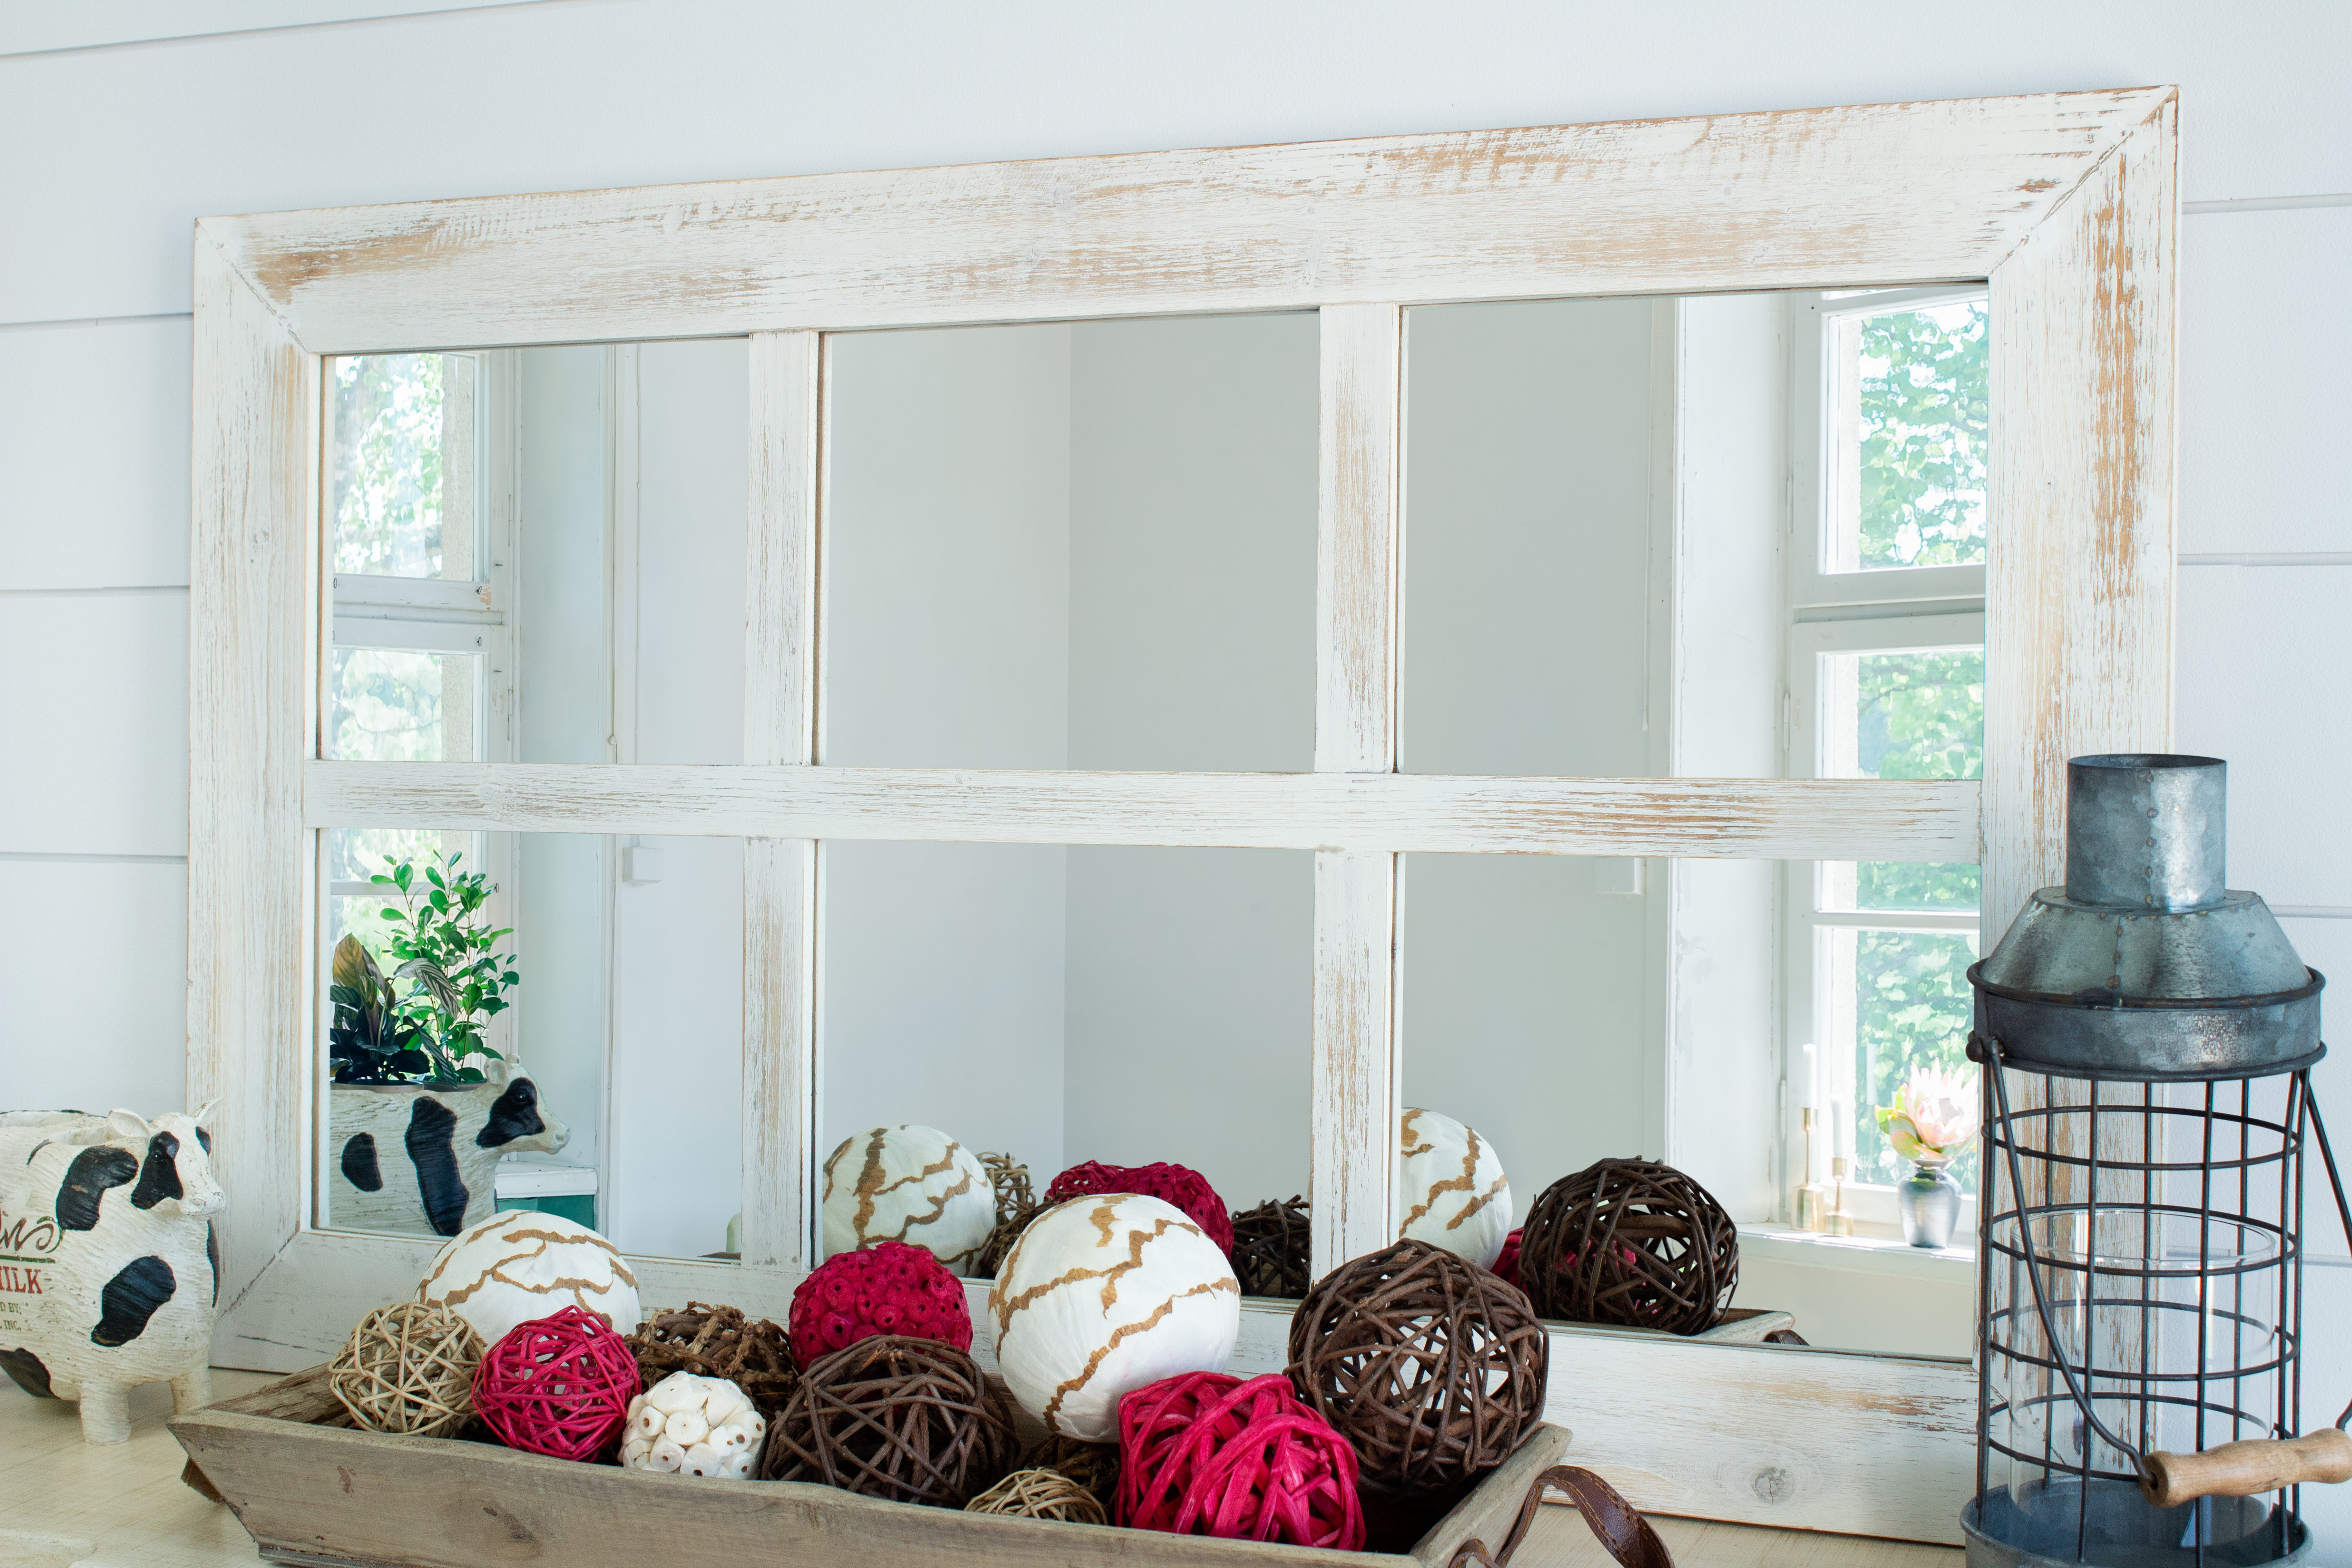 Harr Rustic Windowpane Accent Mirror Regarding Newtown Accent Mirrors (View 18 of 30)